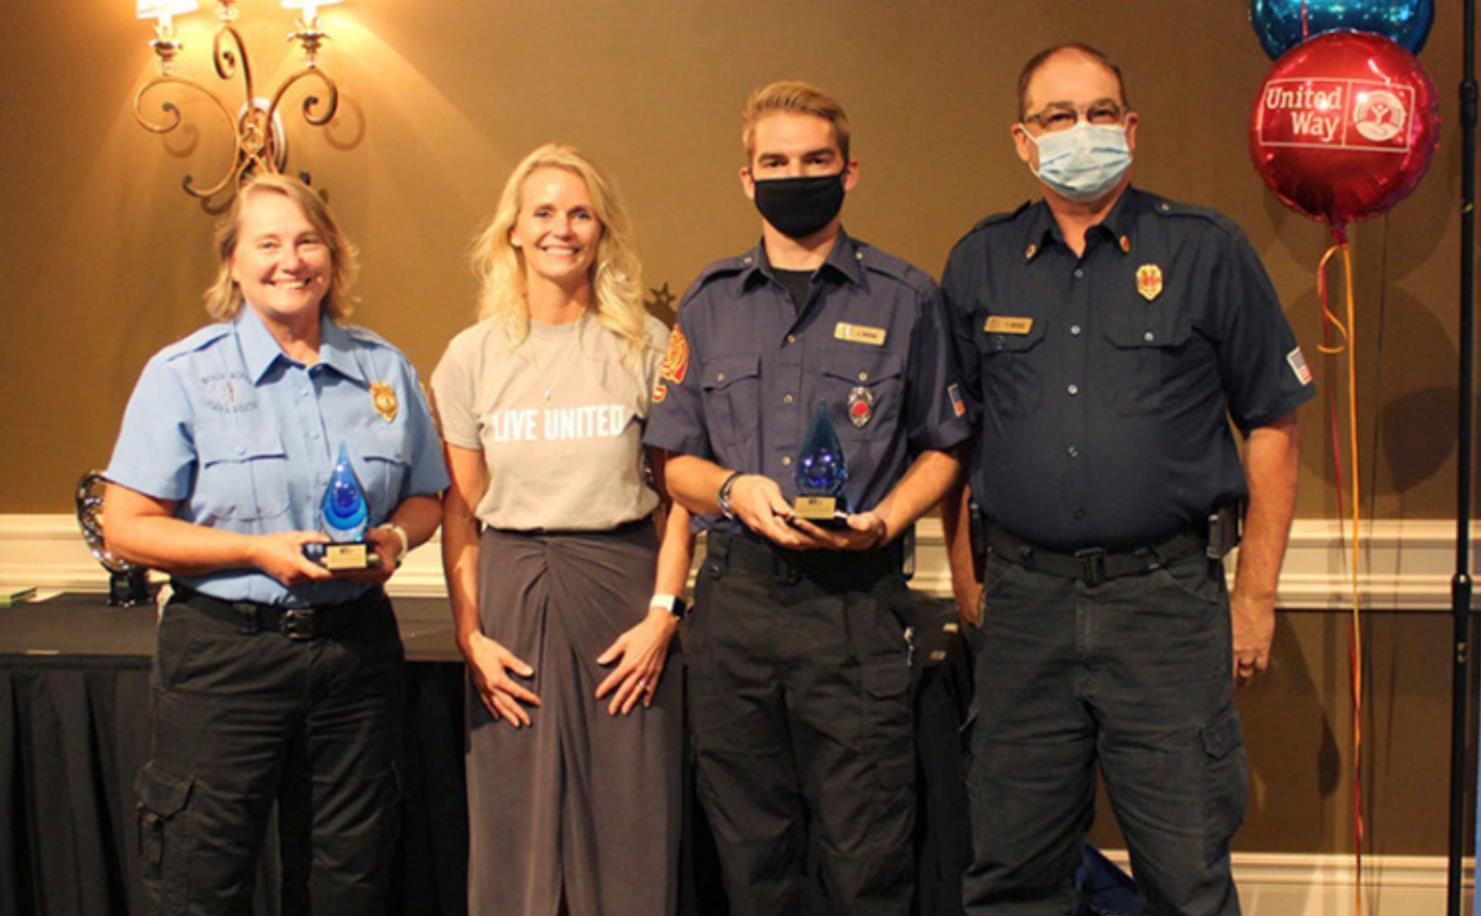 """Heartland United Way President Karen Rathke recetly presented Wood River and Dannebrog first responders with """"Be the One"""" Awards for their work in battling the 2019 floods. Pictured above, left to right, are Jenie Maloney, president of Wood River Fire"""